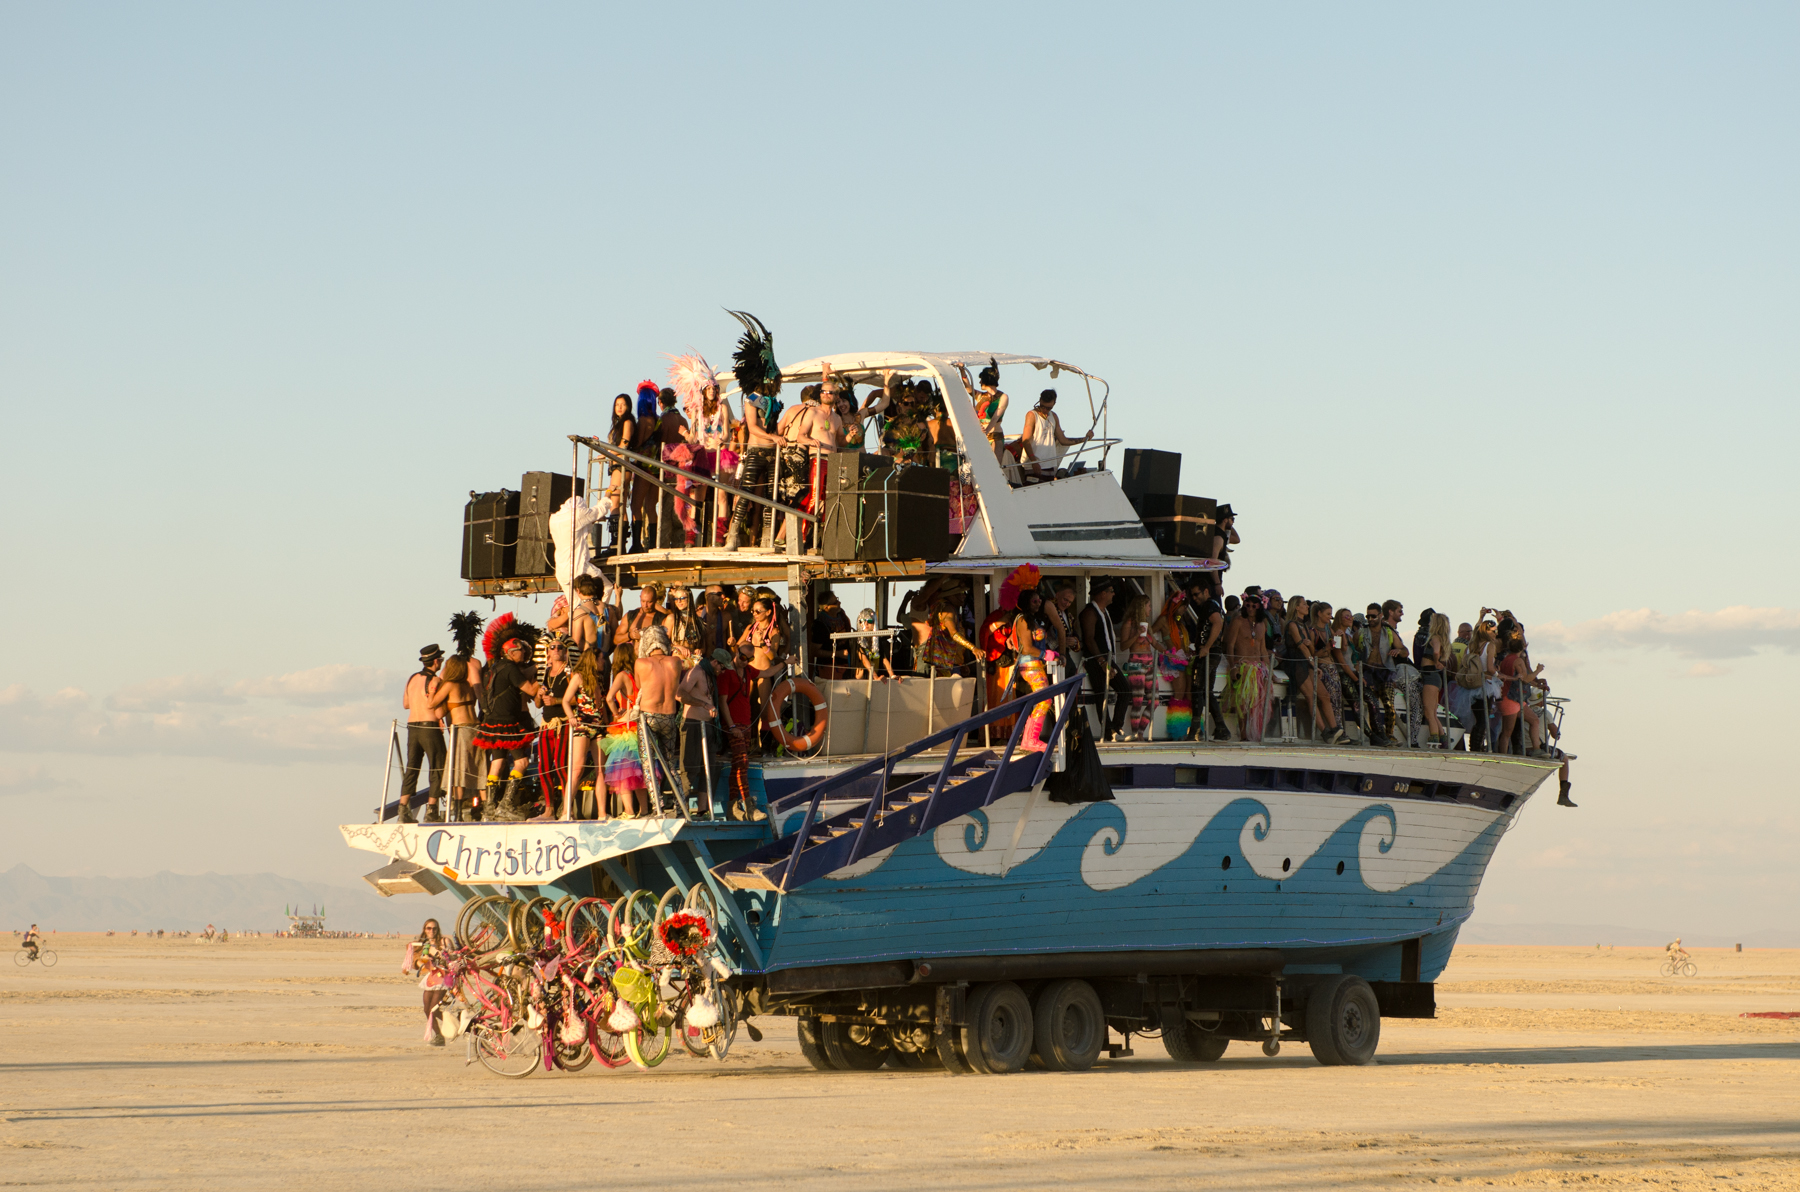 One of the many astoundingly awesome art cars that criss cross the Playa all day and all night.